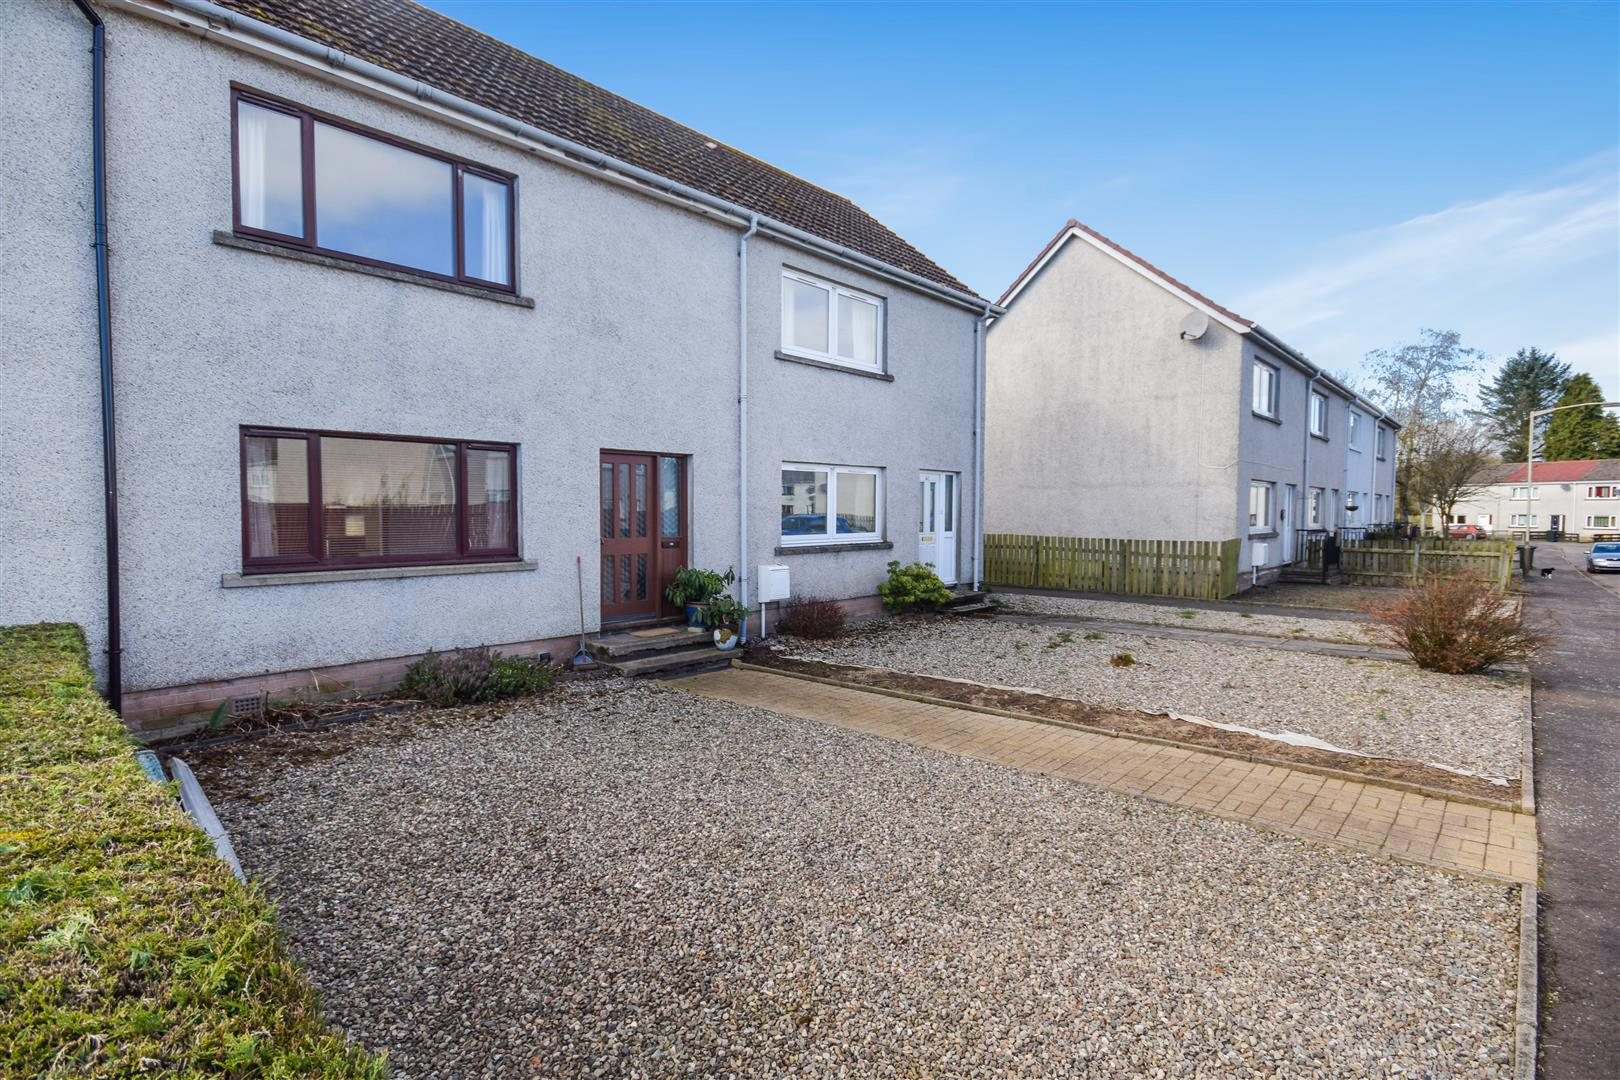 38, Sidlaw Crescent, Coupar Angus, Perthshire, PH13 9BX, UK